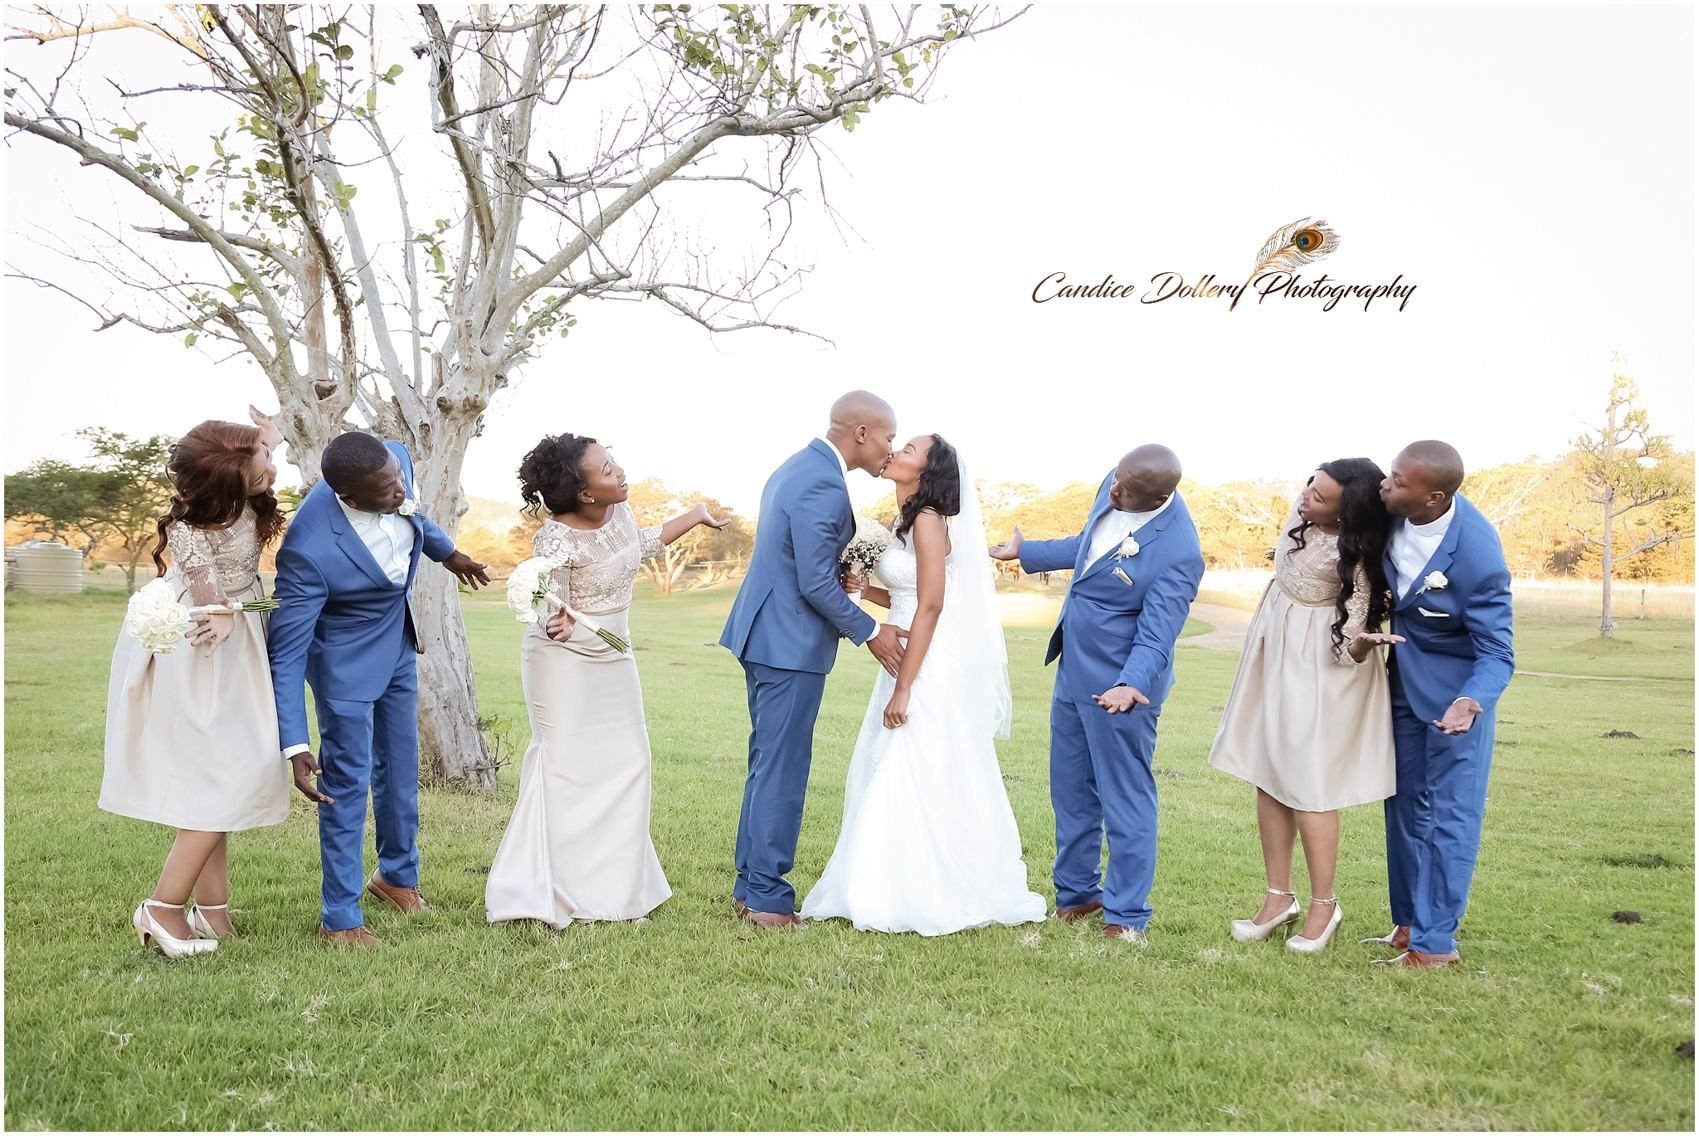 lelethu-kgotsos-wedding-candice-dollery-photography_1677